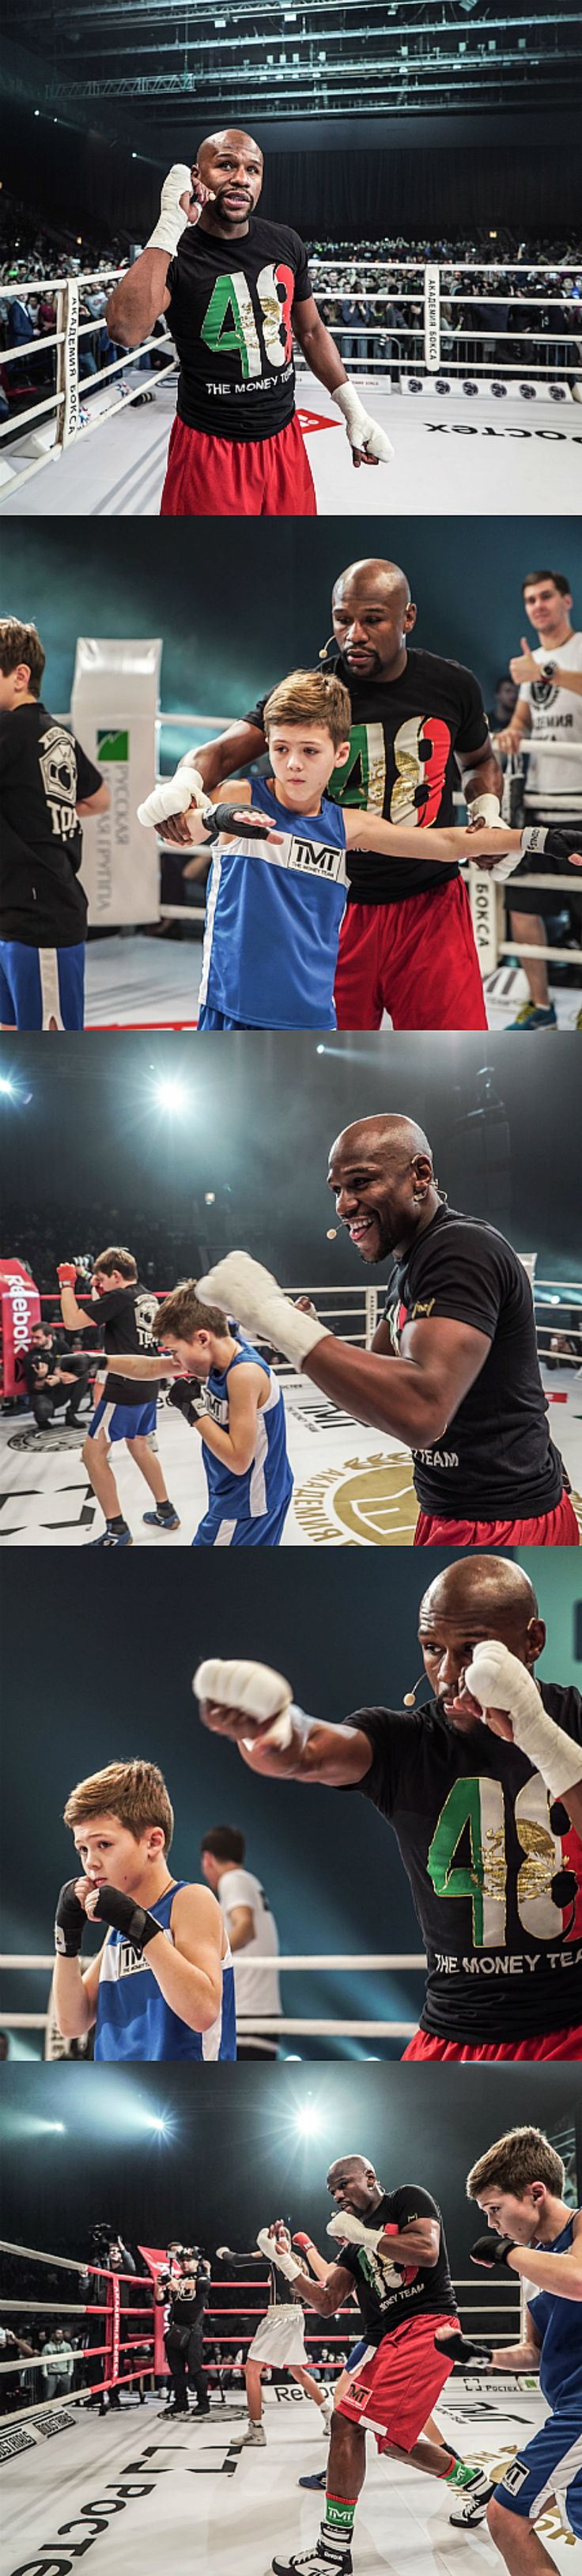 Hundreds of boxing fans in Moscow, Russia became record breakers after they took up superstar Floyd Mayweather Jr's invite to join him in an open training session. The Largest boxing lesson saw an impressive 791 people take part in the training drill, with professional teaching all the way.   #fitness #boxing #kickboxing #WBC #mayweather #floyd #boxer #athlete #classes #fitnessclass #exercise #fit #healthy #russia